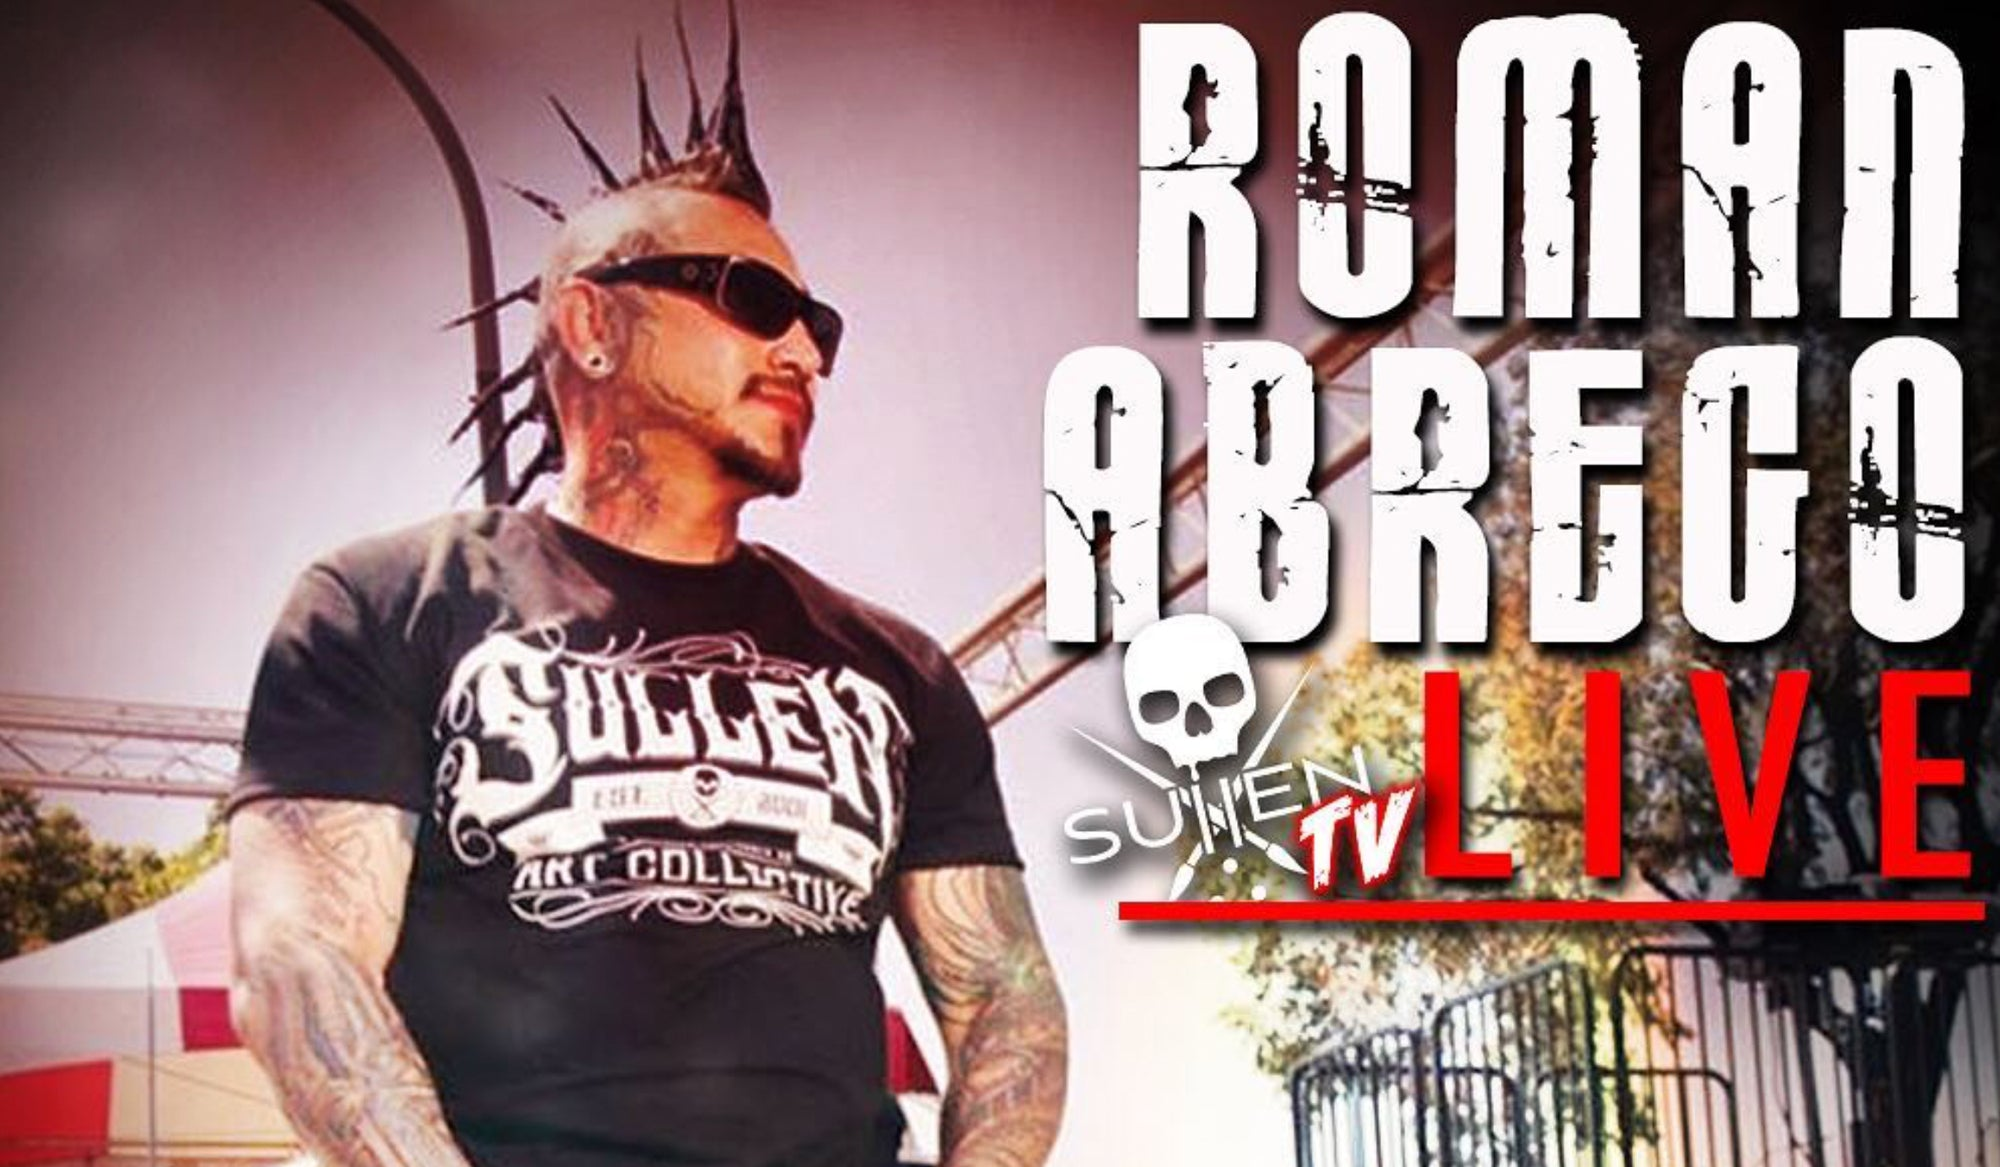 Live Tattoo | Roman Abrego - Sullen TV